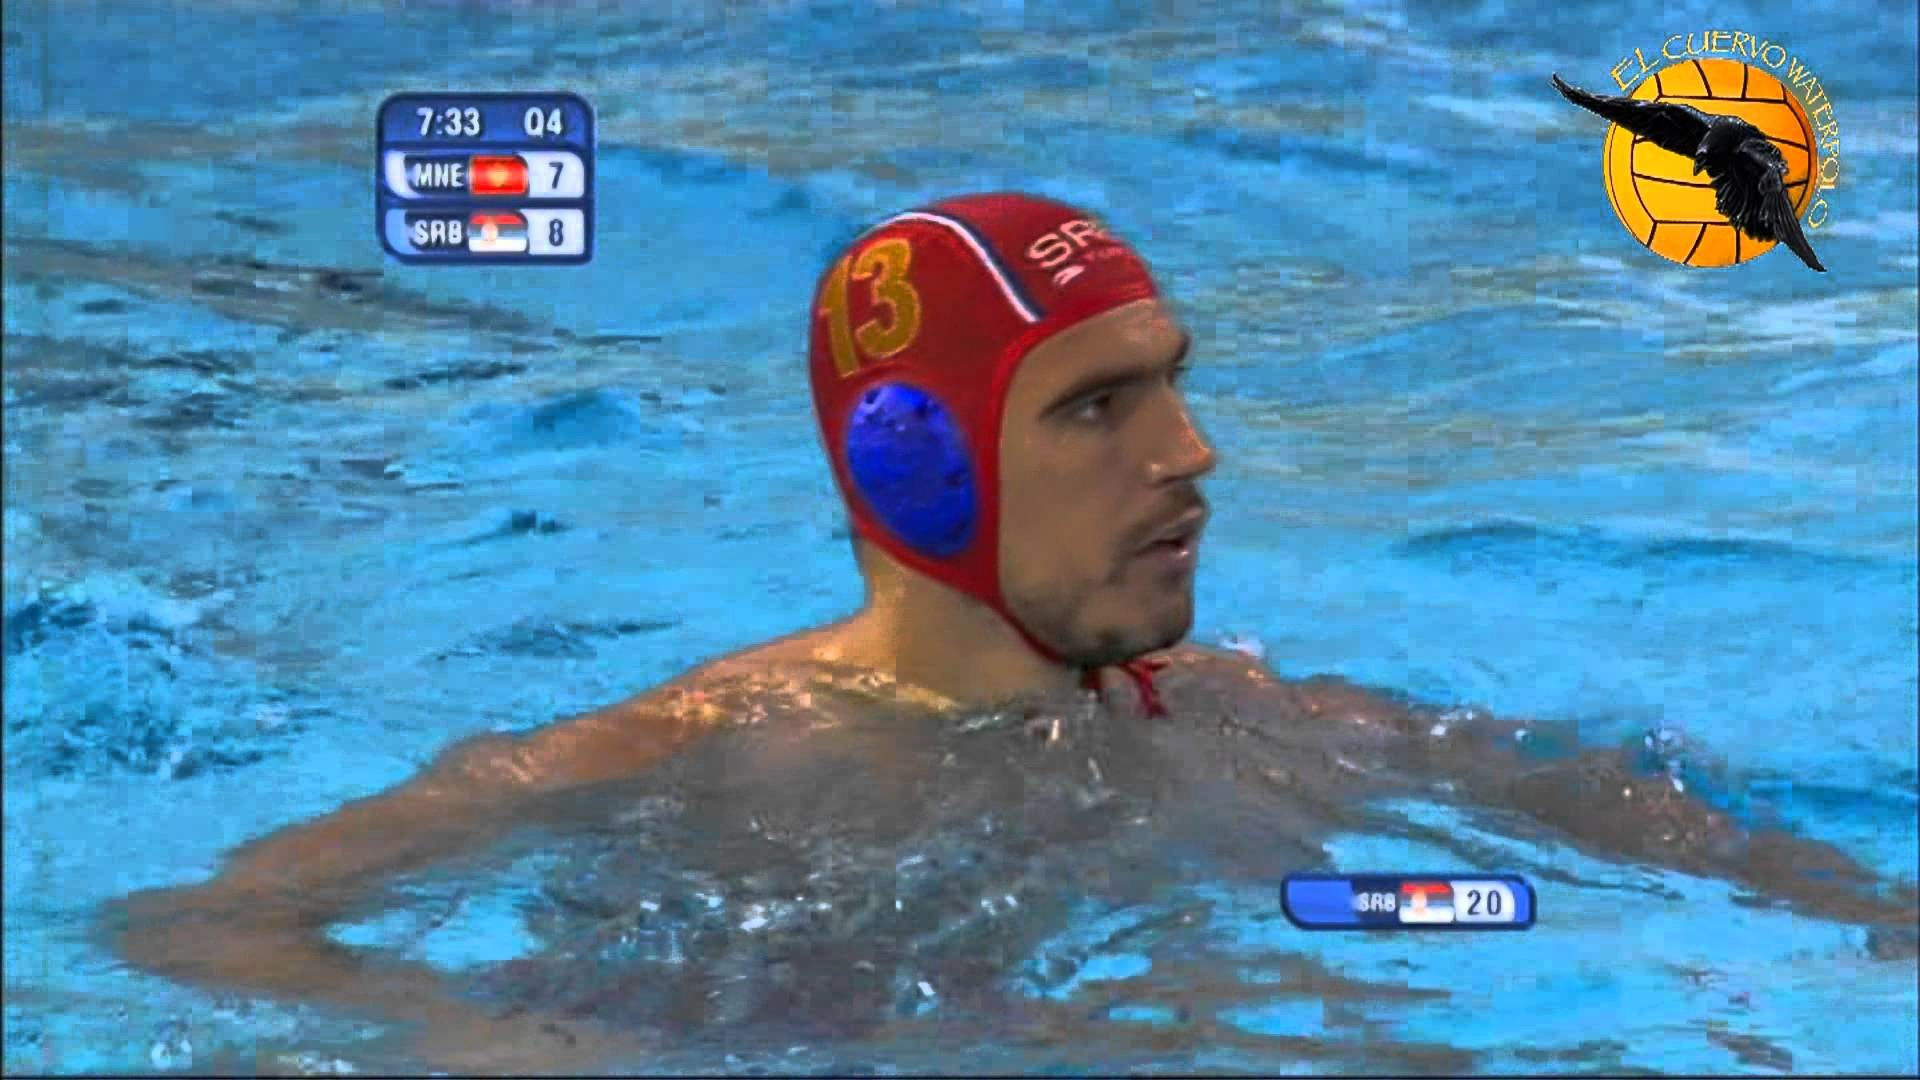 1920x1080 Montenegro 9 Serbia 8 4f World Champs Barcelona 2013 30 7 13 water polo -  YouTube